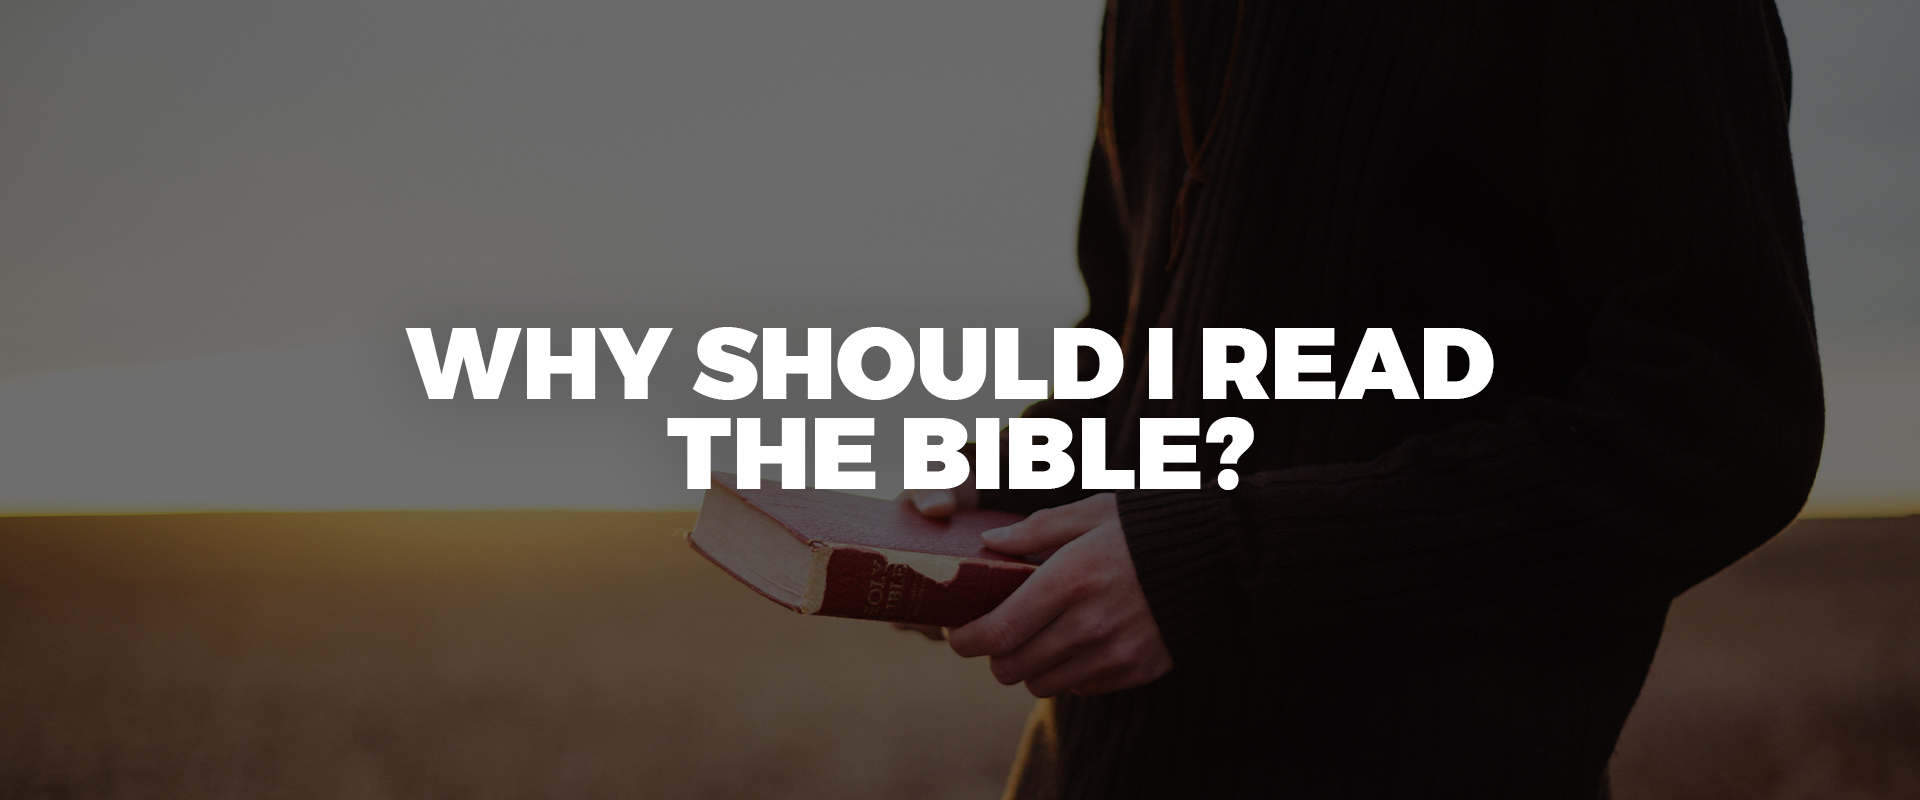 Why Should I Read The Bible?